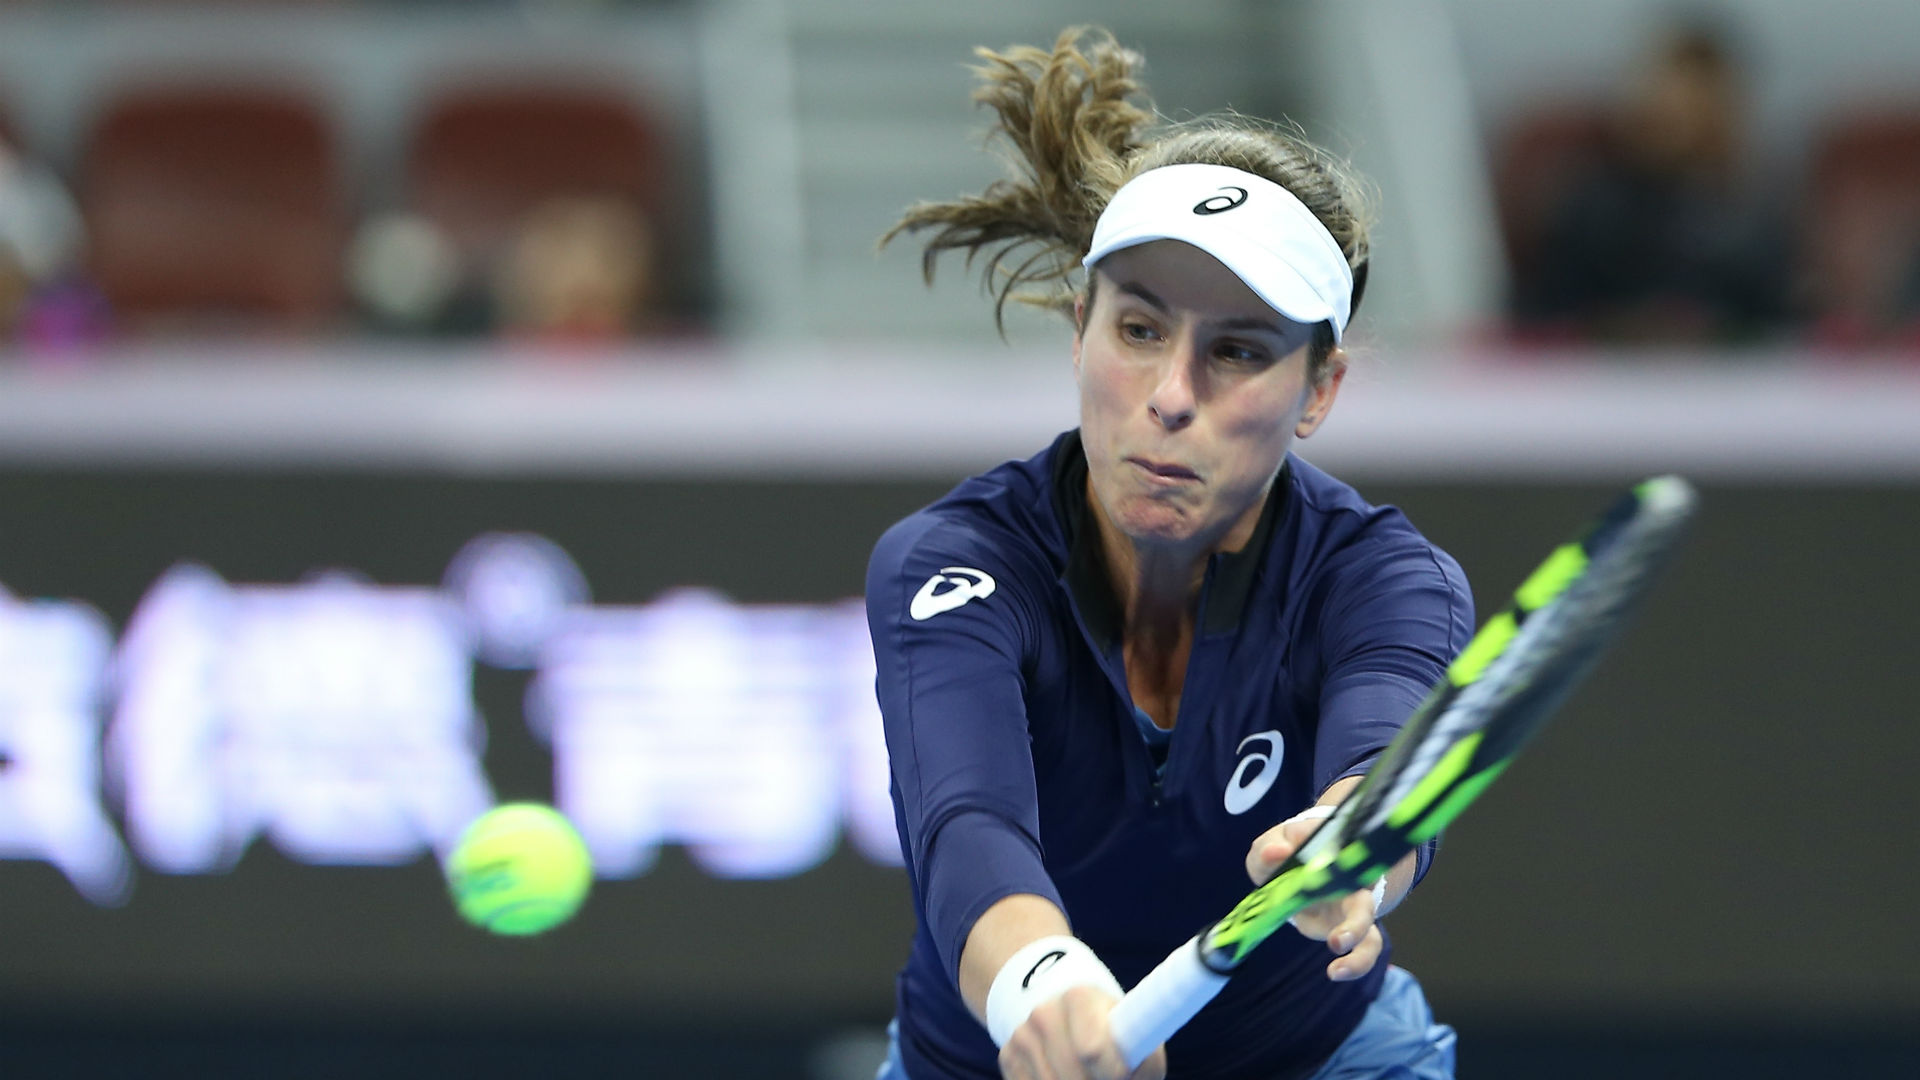 Konta conquers Mertens in Moscow